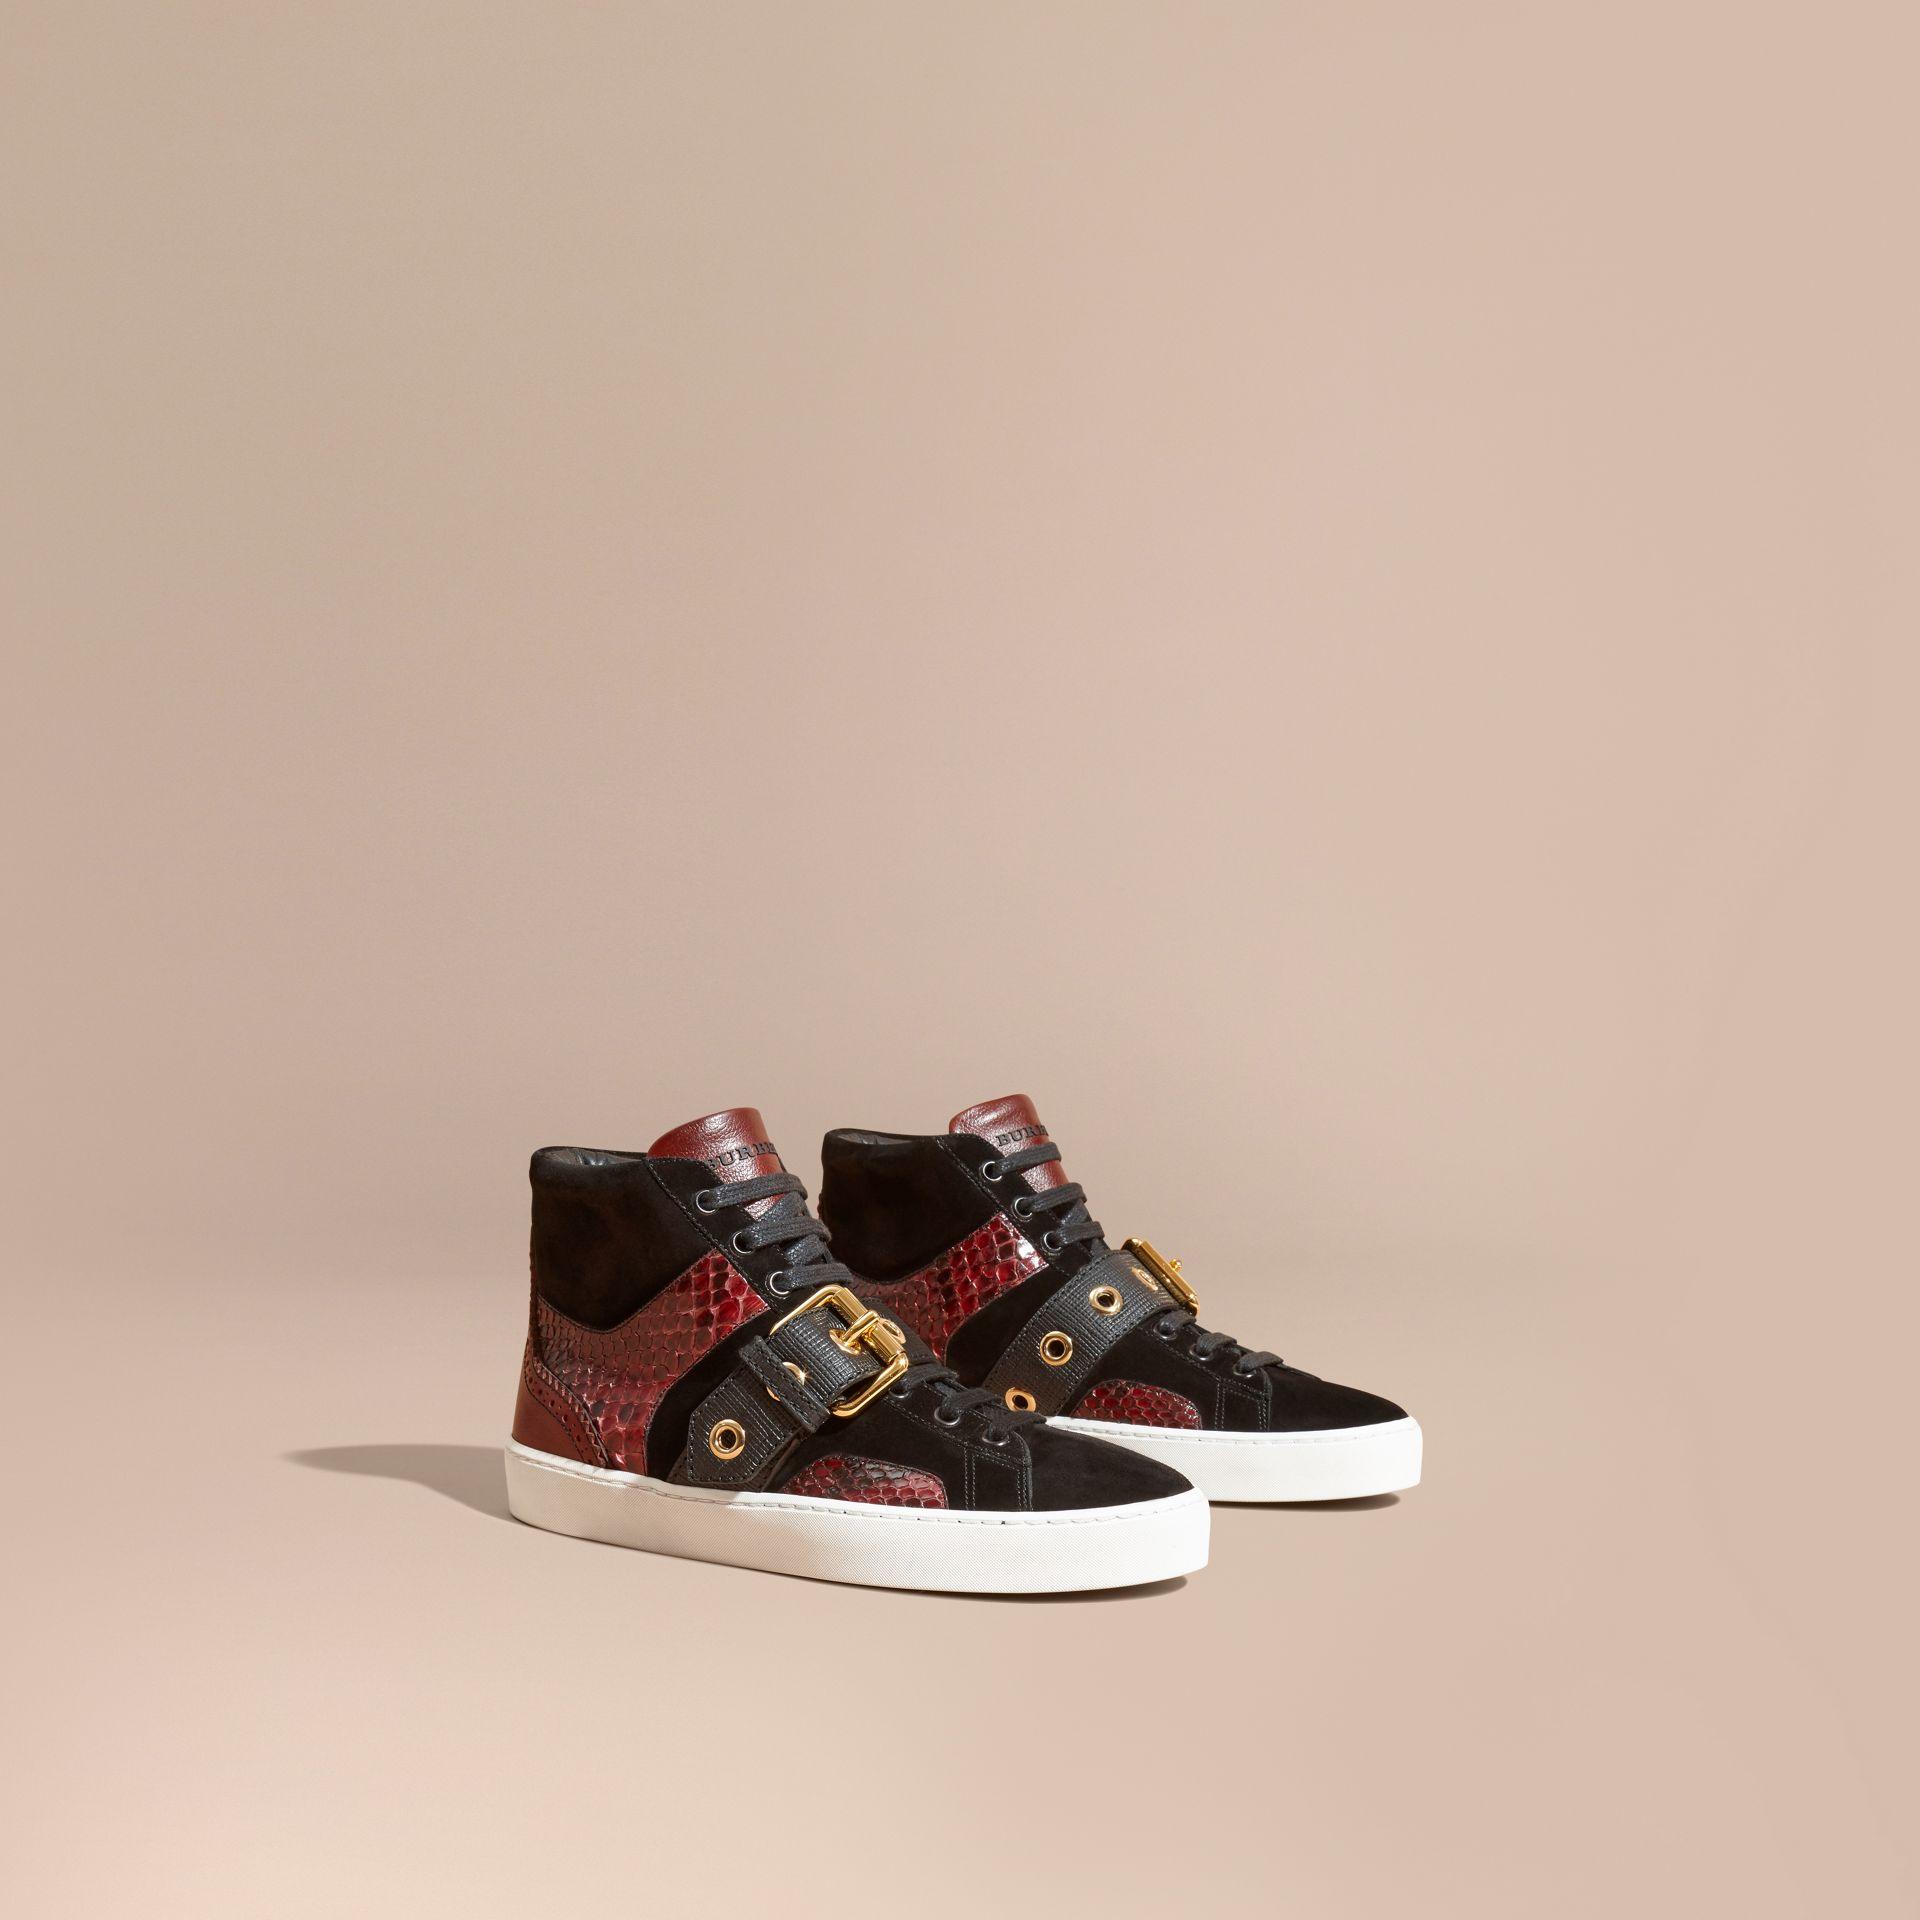 Bordeaux Buckle Detail Leather and Snakeskin High-top Trainers Bordeaux - gallery image 1